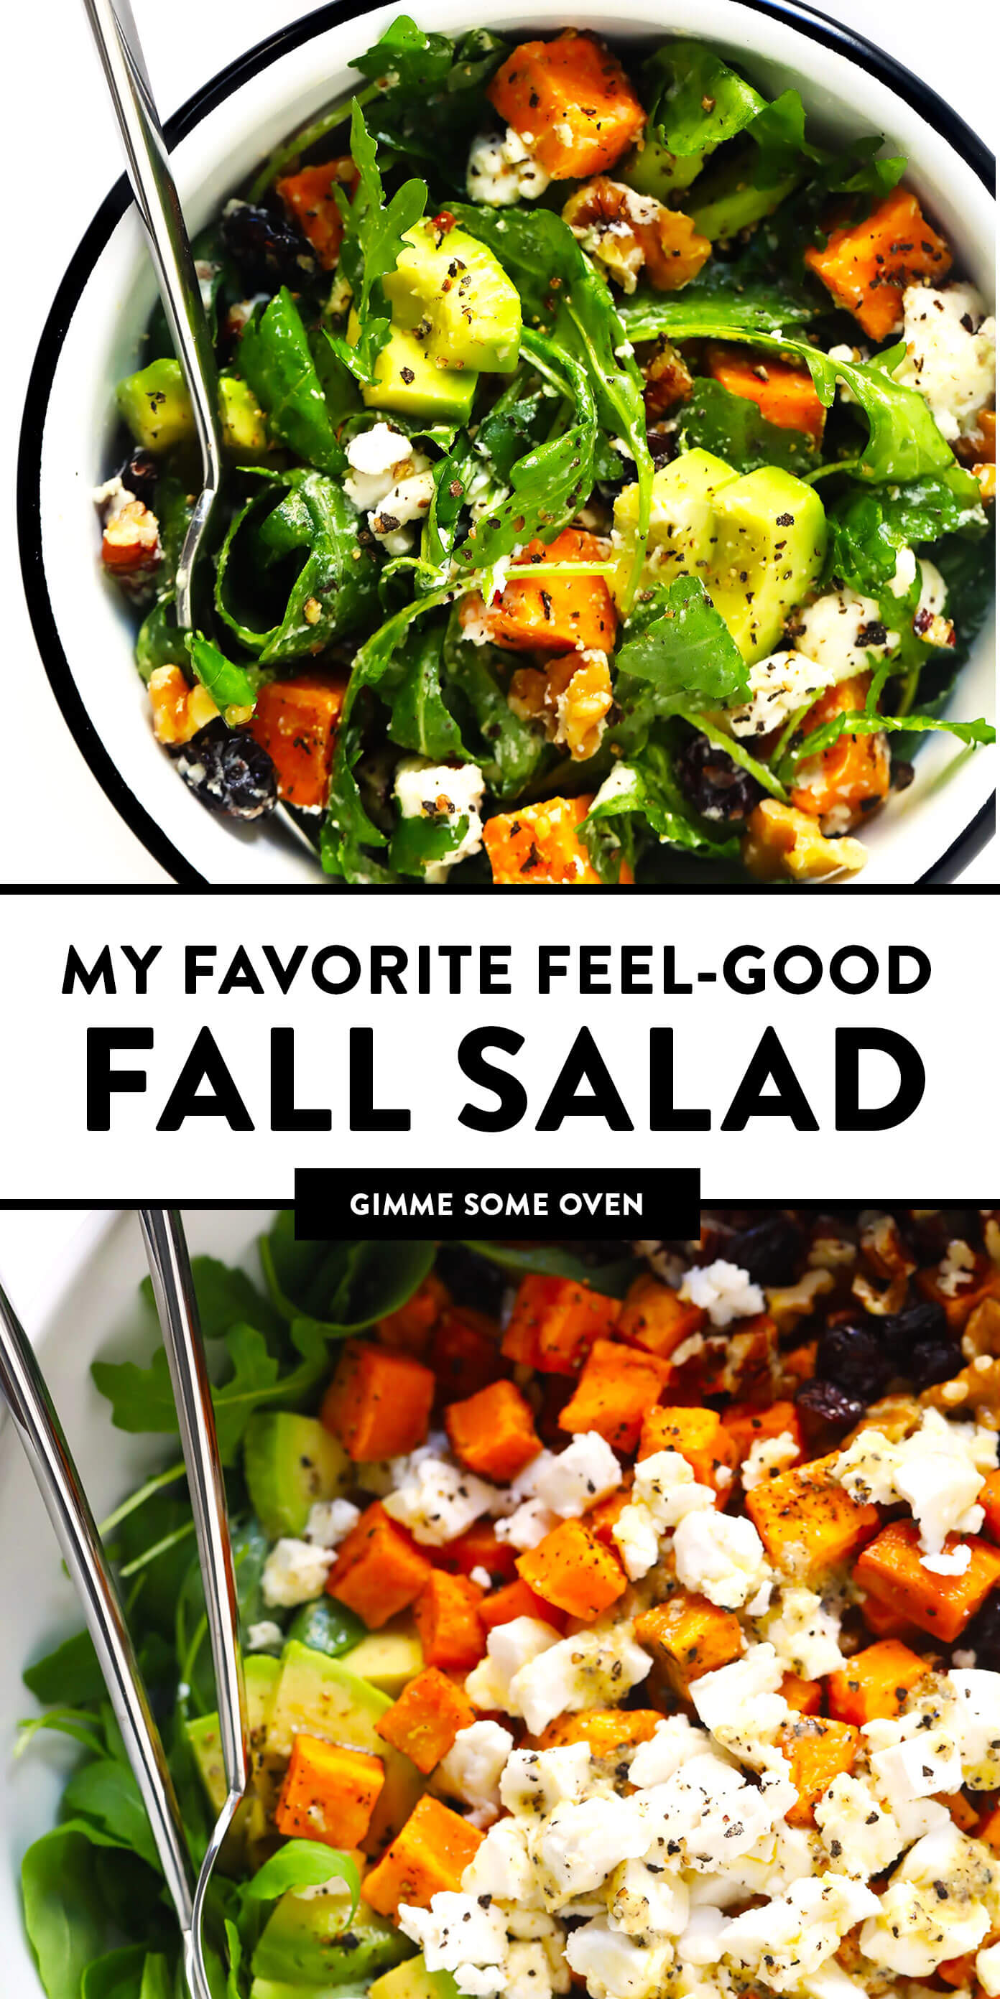 Feel Good Fall Salad Gimme Some Oven Recipe In 2020 Autumn Salad Autumn Salad Recipes Fall Dinner Recipes